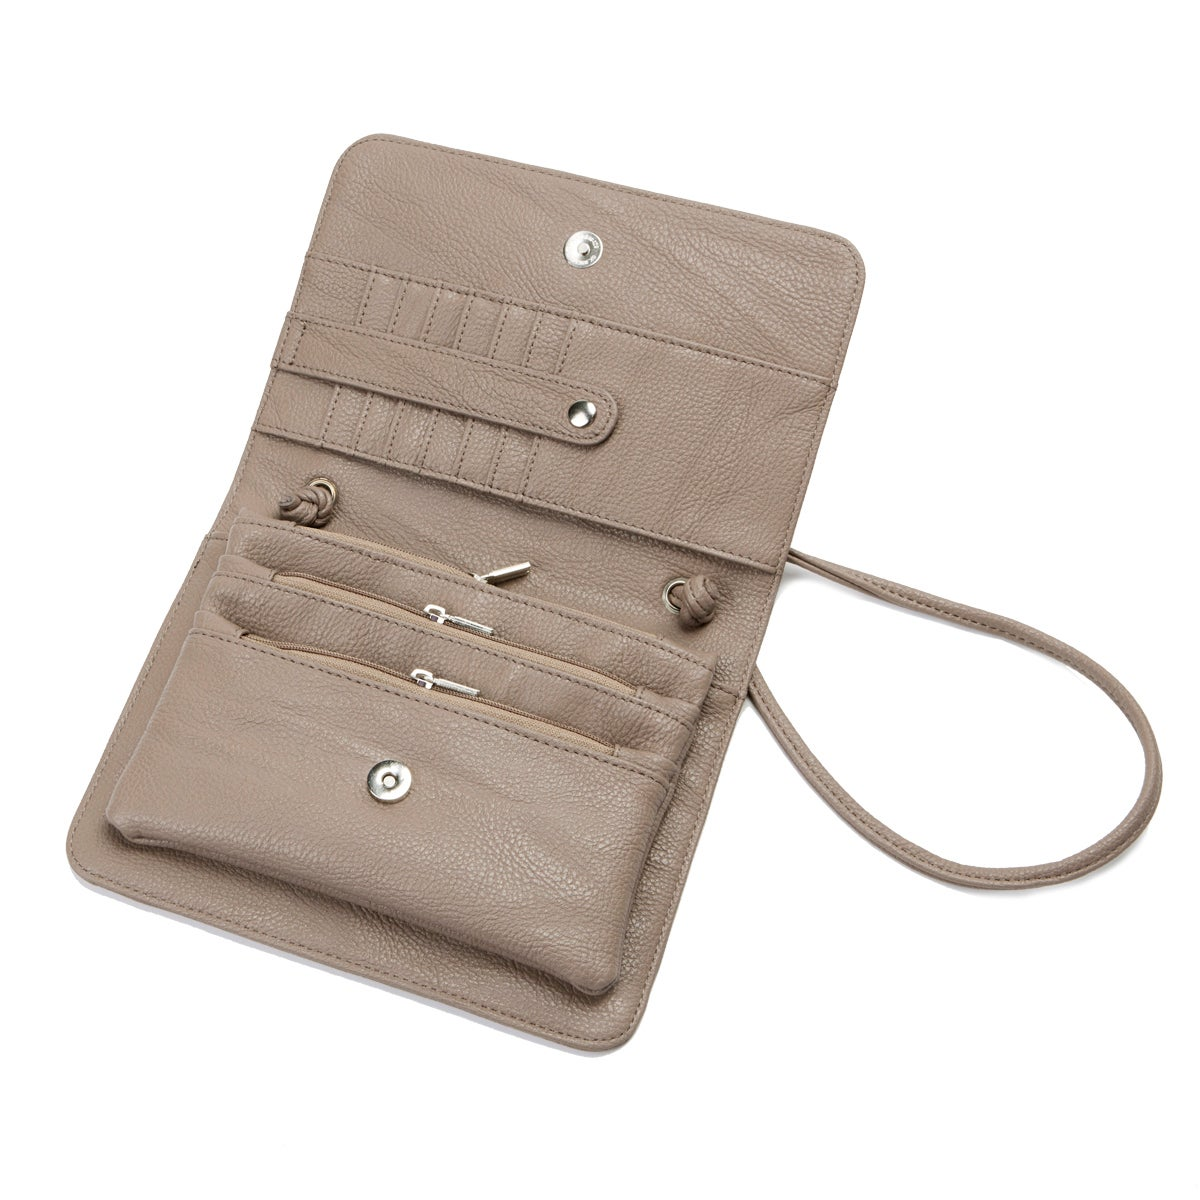 Lds taupe frnt flap cross body organizer